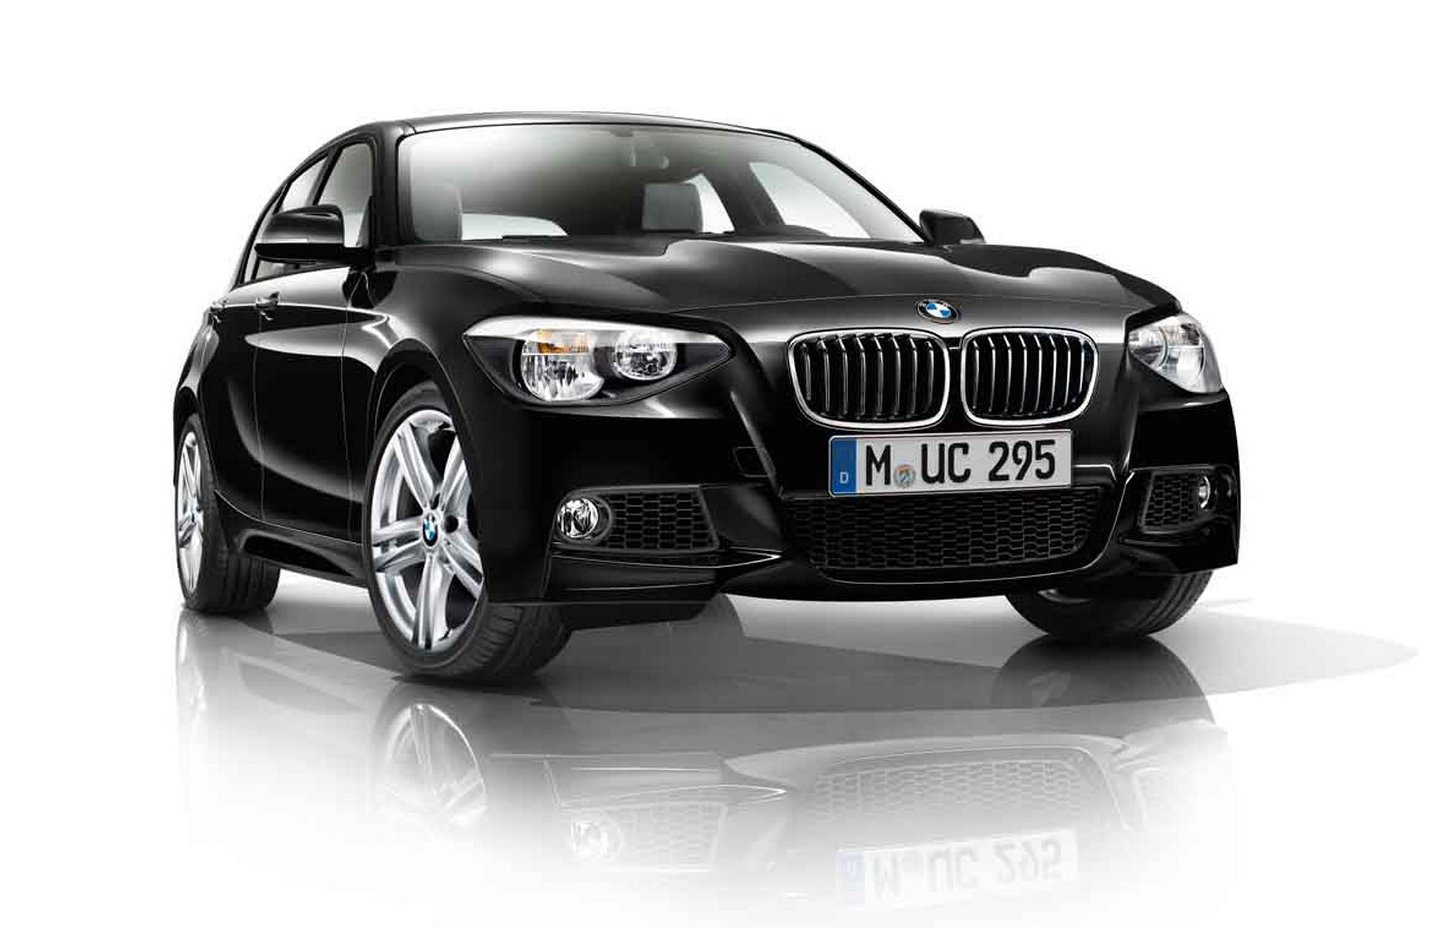 2012 bmw 1 series m sport package first details autoevolution. Black Bedroom Furniture Sets. Home Design Ideas